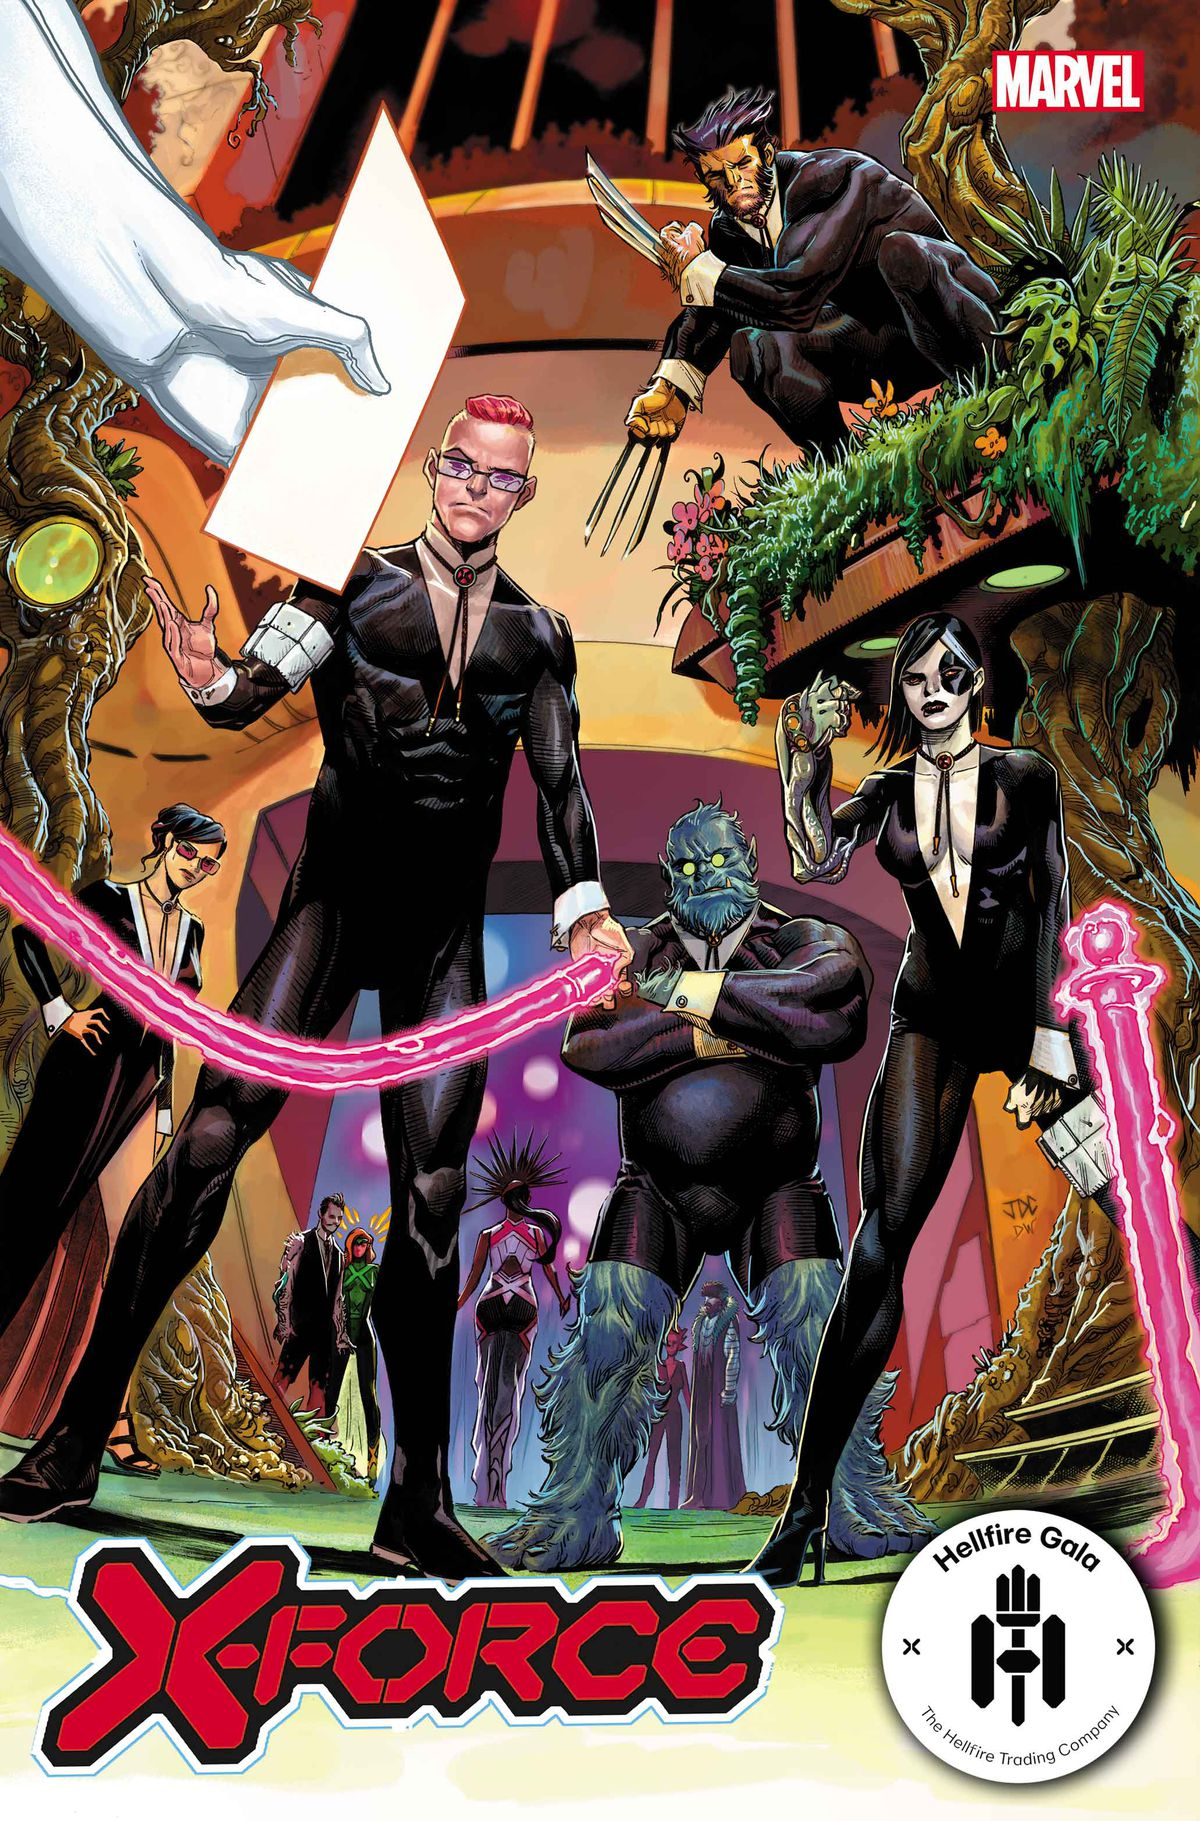 X-Force, in black suits and bolo ties, work the Hellfire Gala as bouncers on the cover to X-Force #20, Marvel Comics (2021)